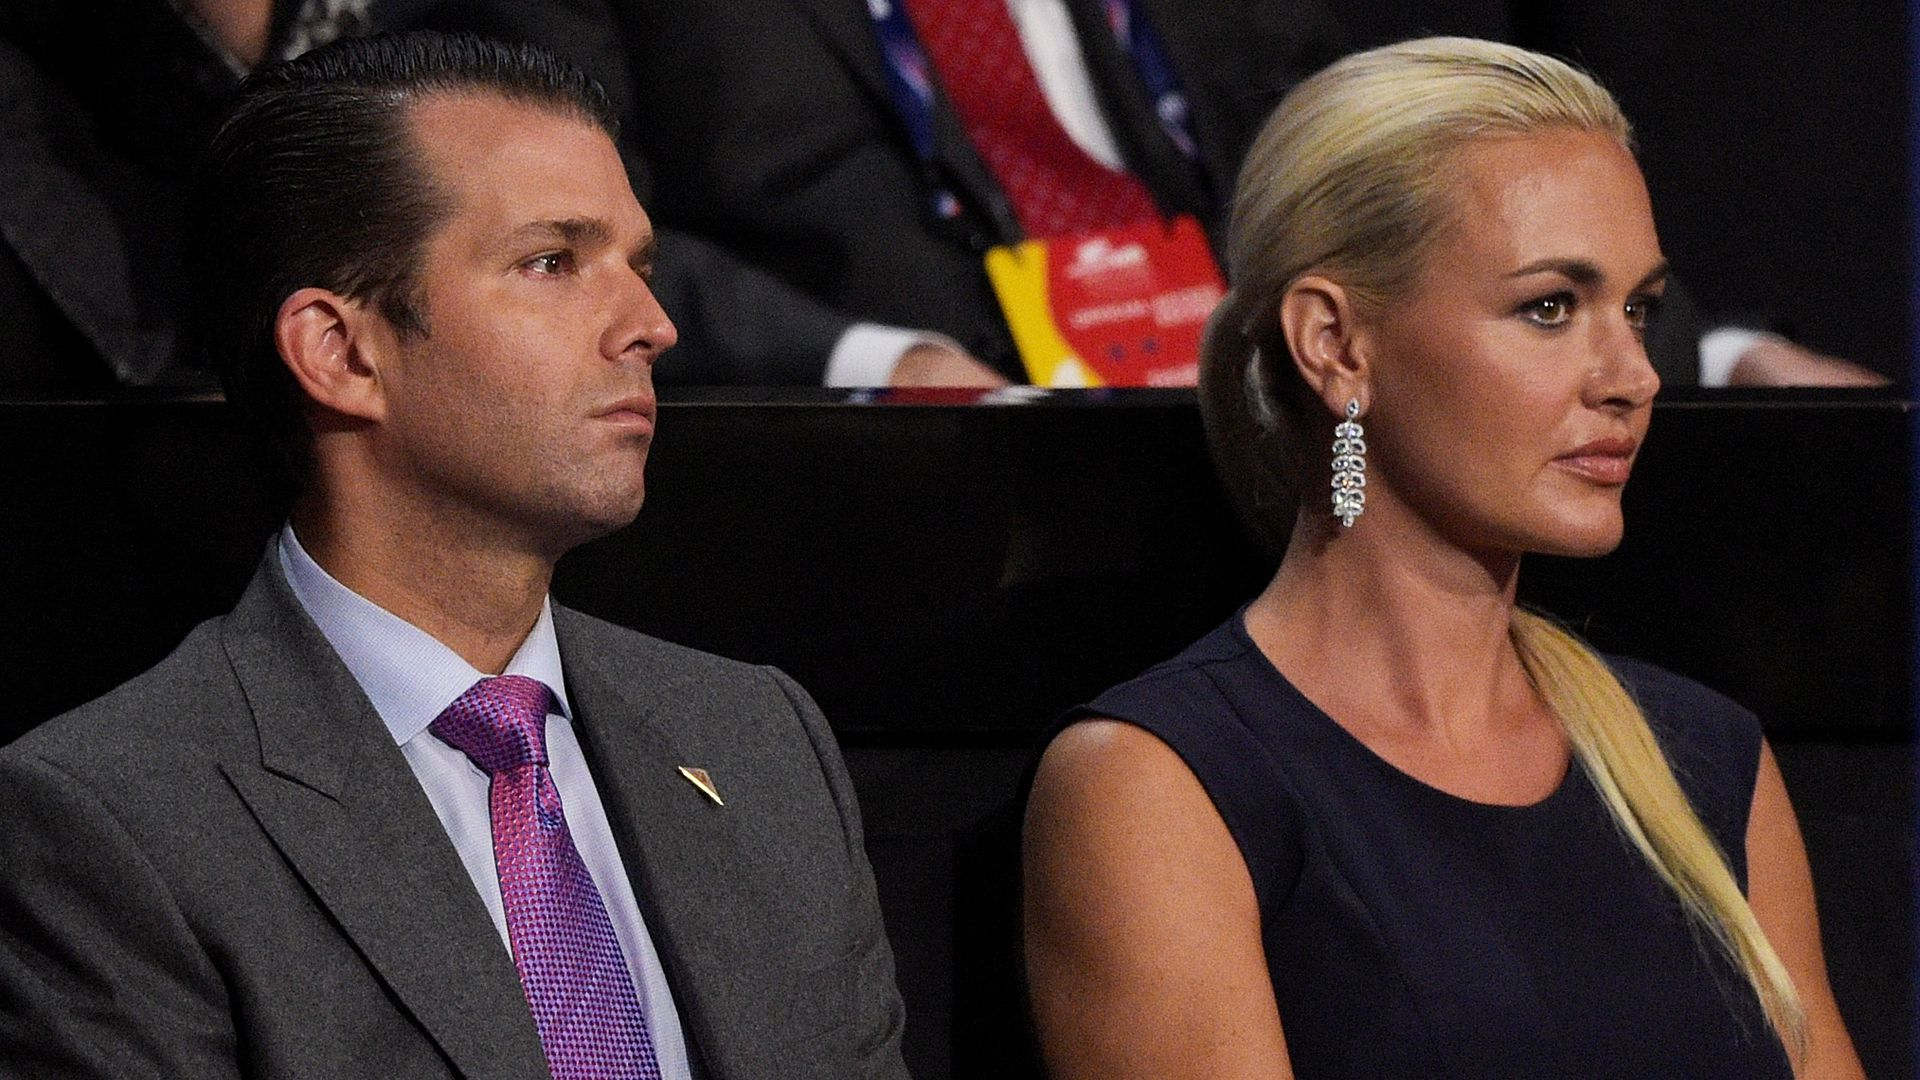 Donald Trump Jr. and his wife Vanessa